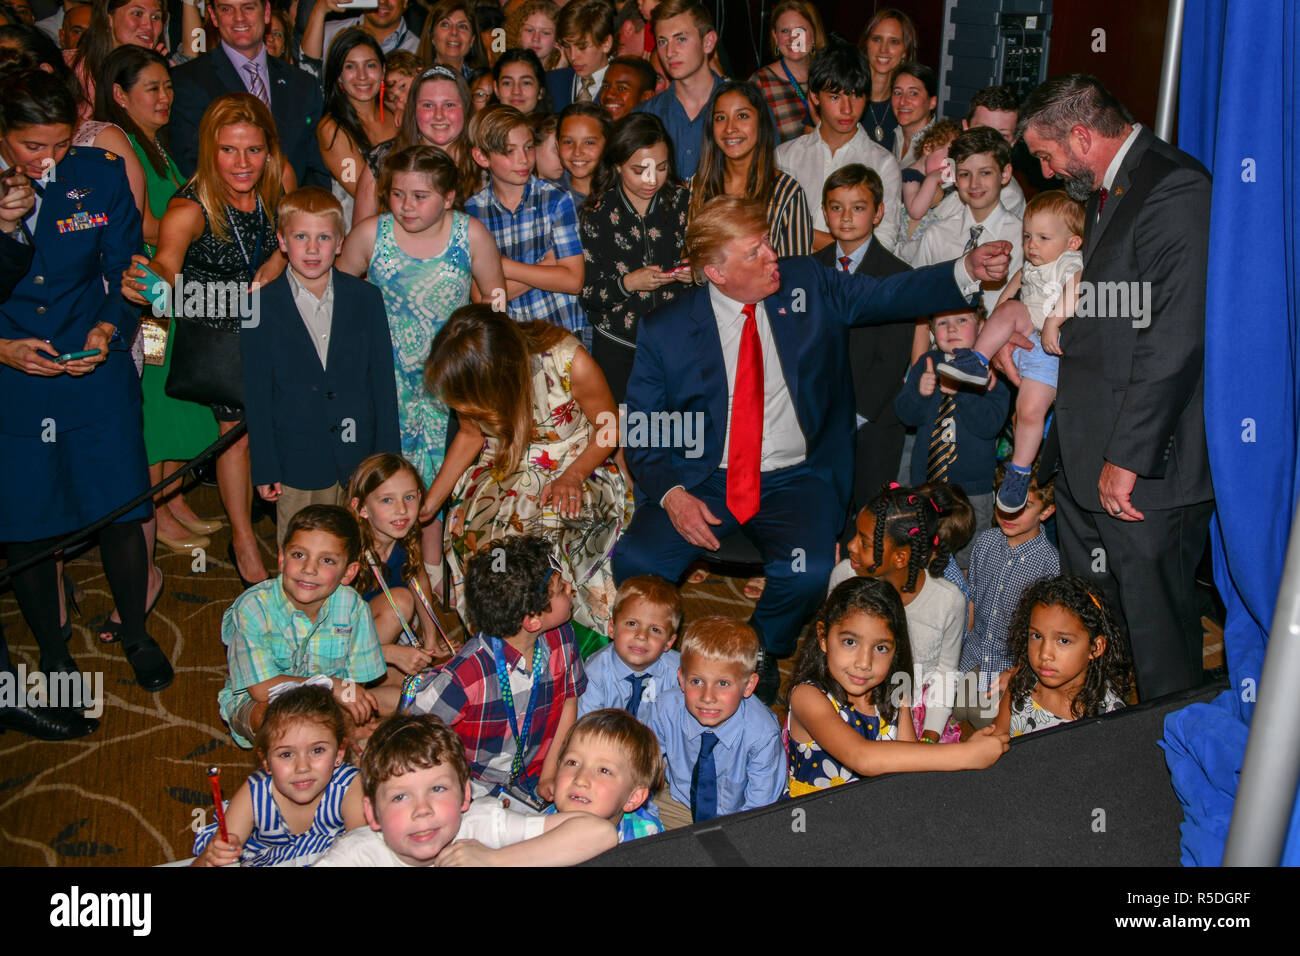 Buenos Aires, Argentina. 1st December, 2018. Argentina. 1st December 2018. Buenos Aires, Argentina. 30th November 2018. U.S. President Donald Trump, and First Lady Melania Trump during a meet and greet with staff and families of US Embassy November 30, 2018 in Buenos Aires, Argentina. 30th November 2018 Credit: Planetpix/Alamy Live News Credit: Planetpix/Alamy Live News - Stock Image